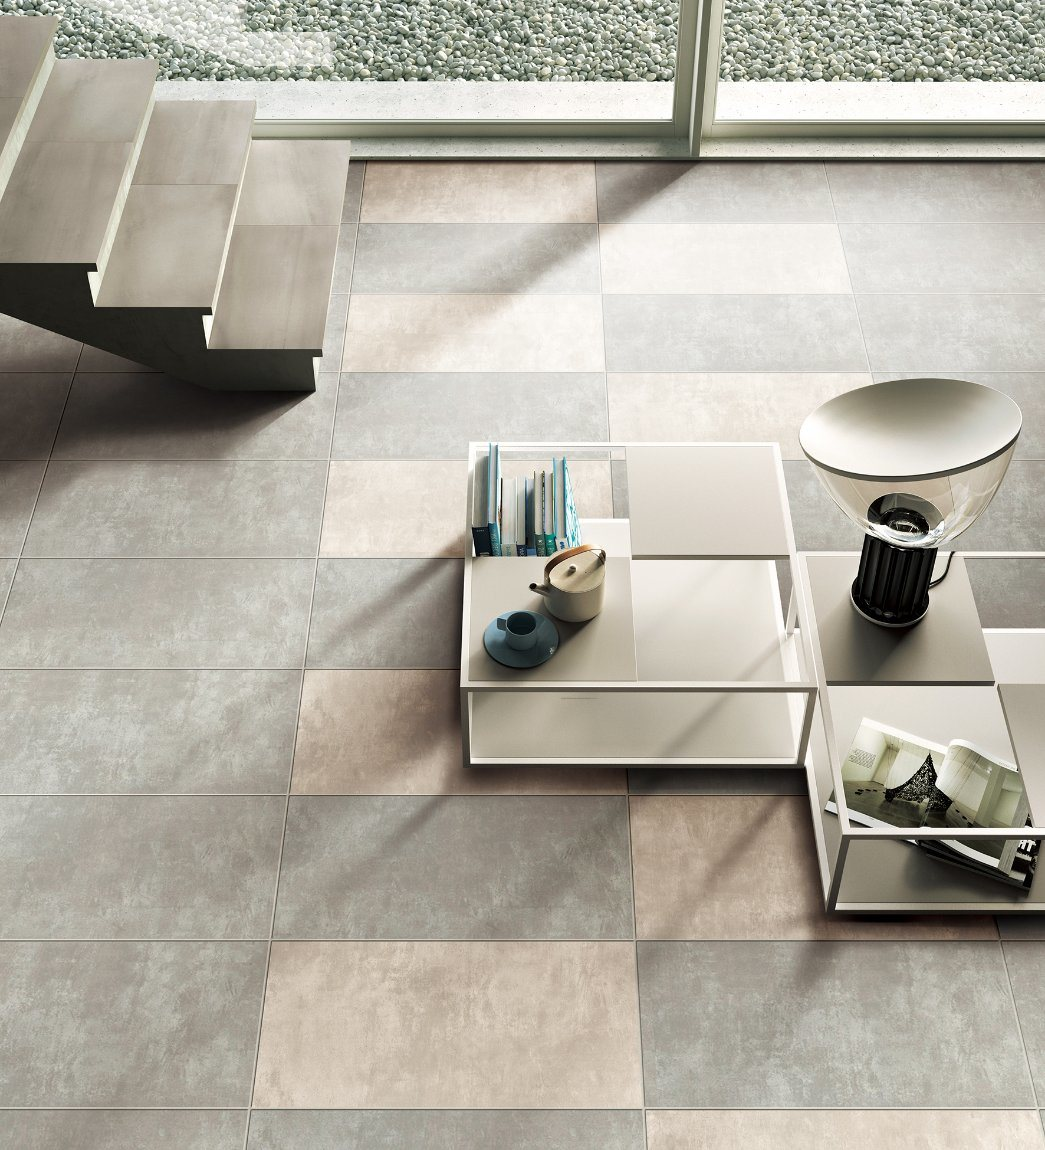 Gaogesi-Series/Cement Look/Hot Sales Matte Finished/Rustic Tile Antique Brick Porcelain Floor Tile